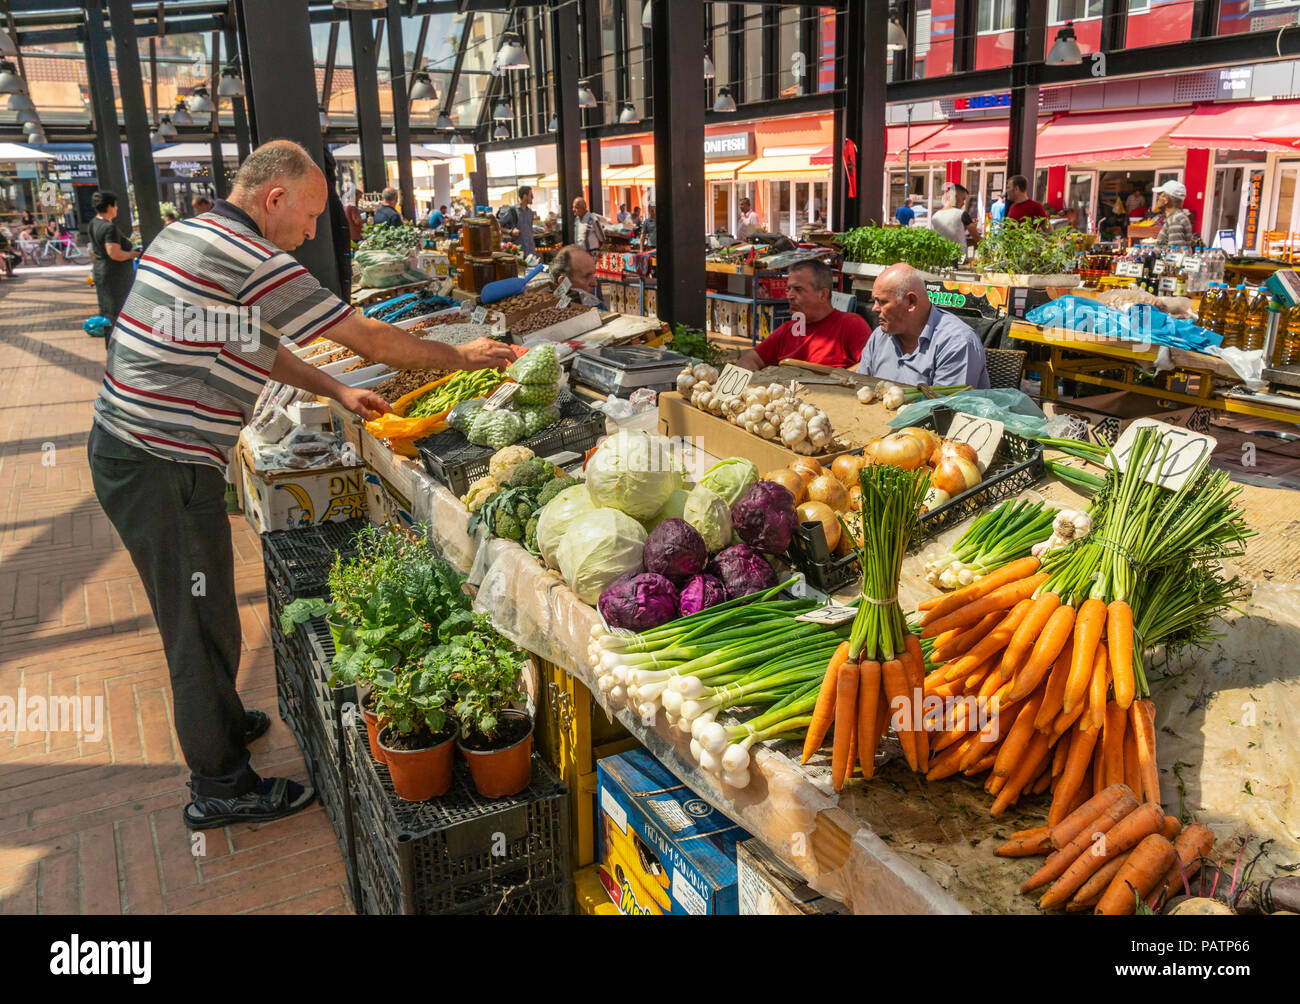 Vegetable stall in the newly refurbished Pazari i Ri, New bazaar area,  central market, in Tirana, Albania, - Stock Image